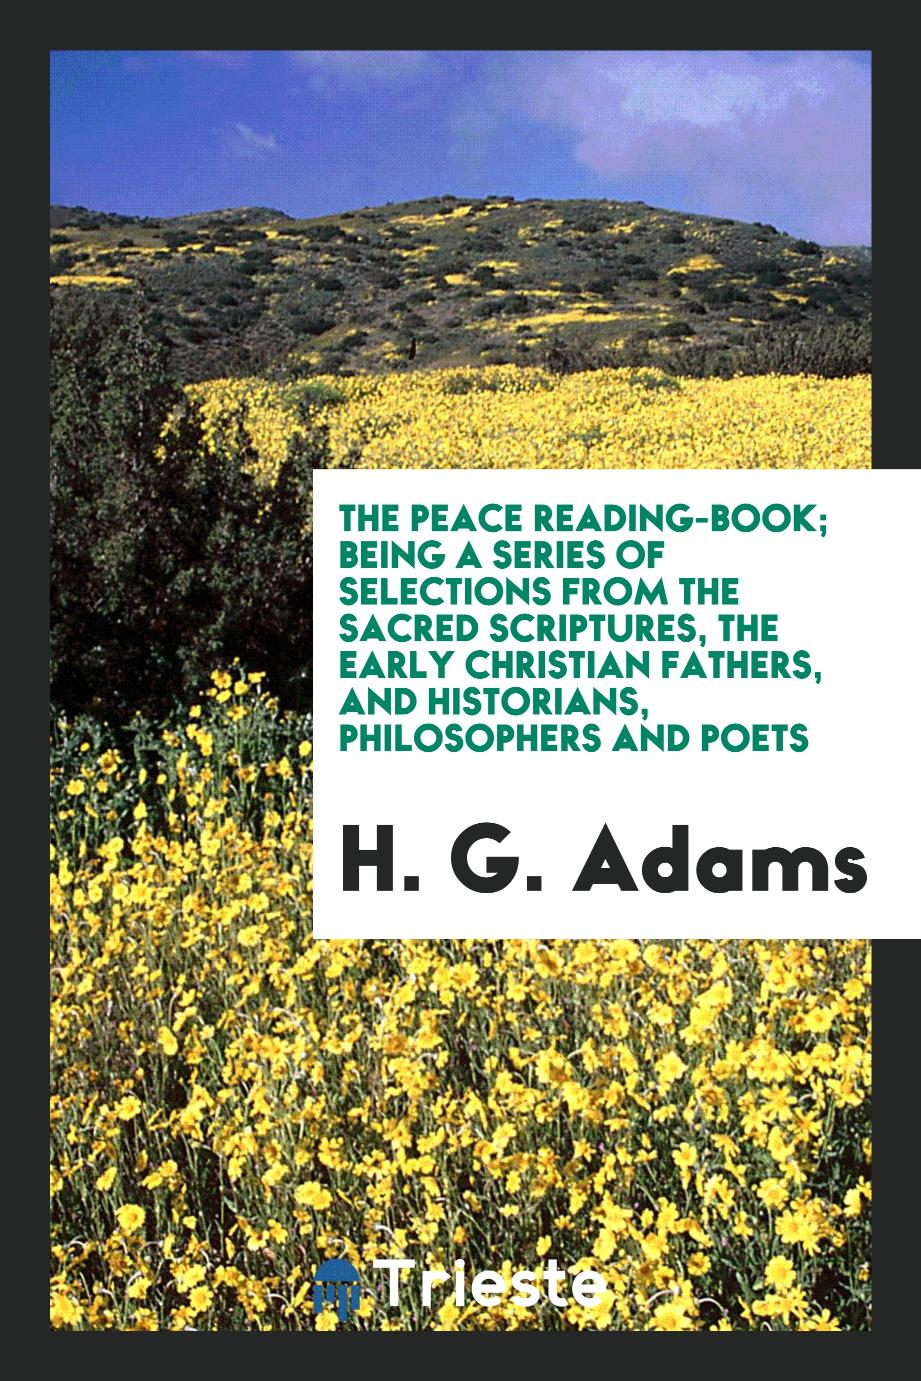 The Peace Reading-Book; Being a Series of Selections from the Sacred Scriptures, the Early Christian Fathers, and Historians, Philosophers and Poets